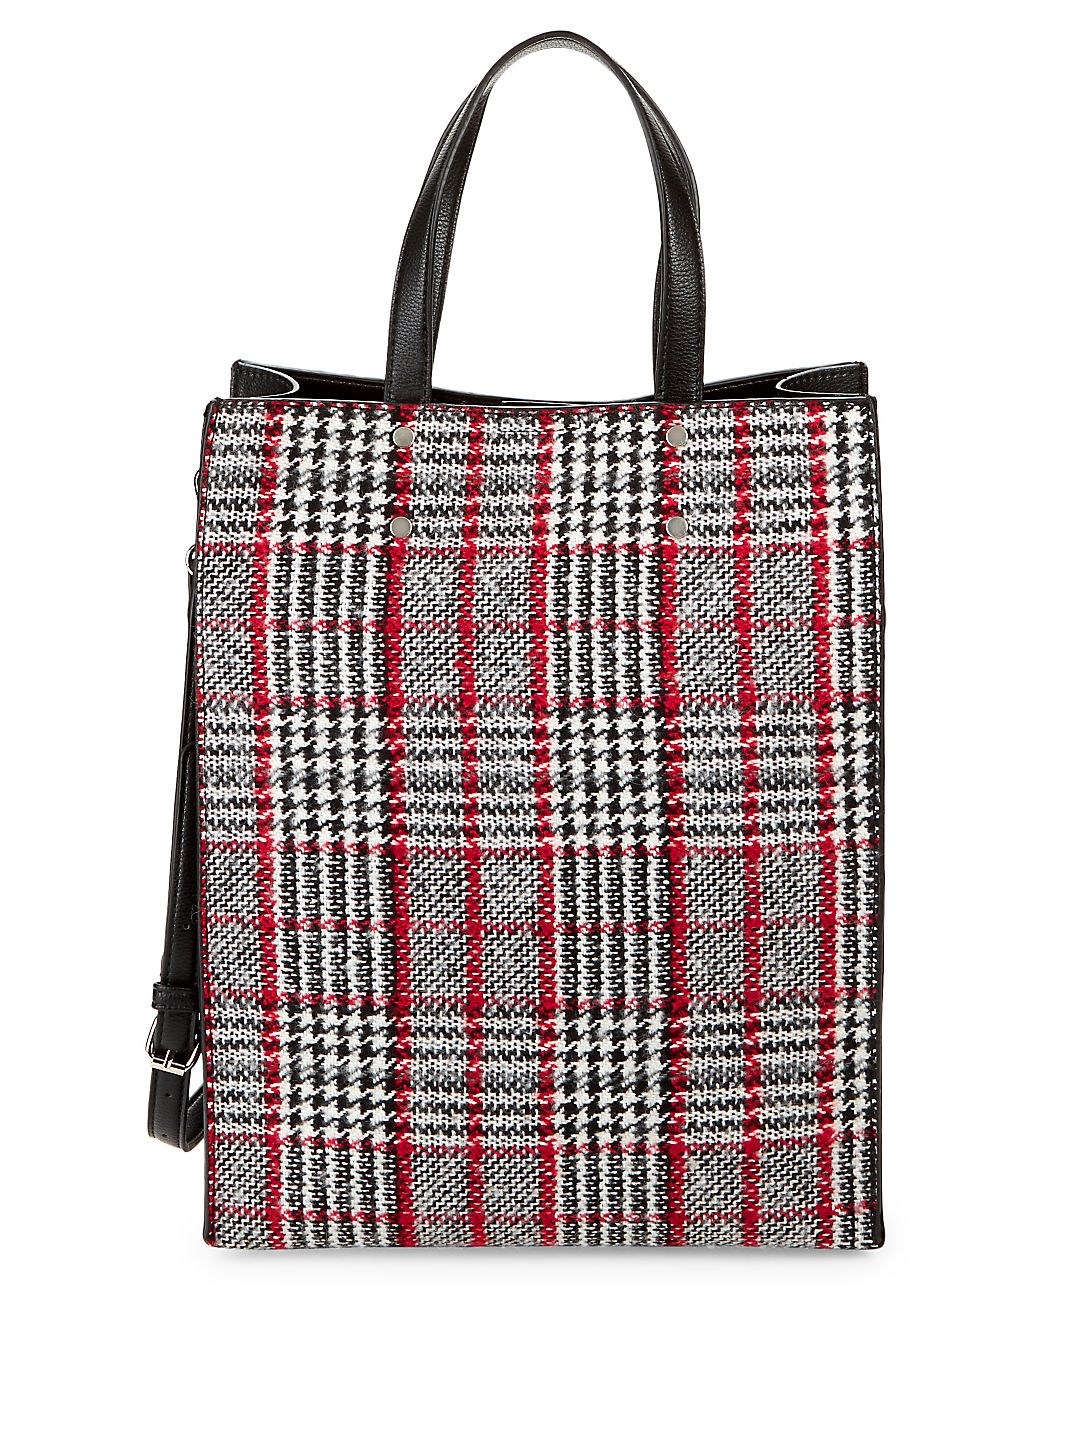 North-South Plaid Tote